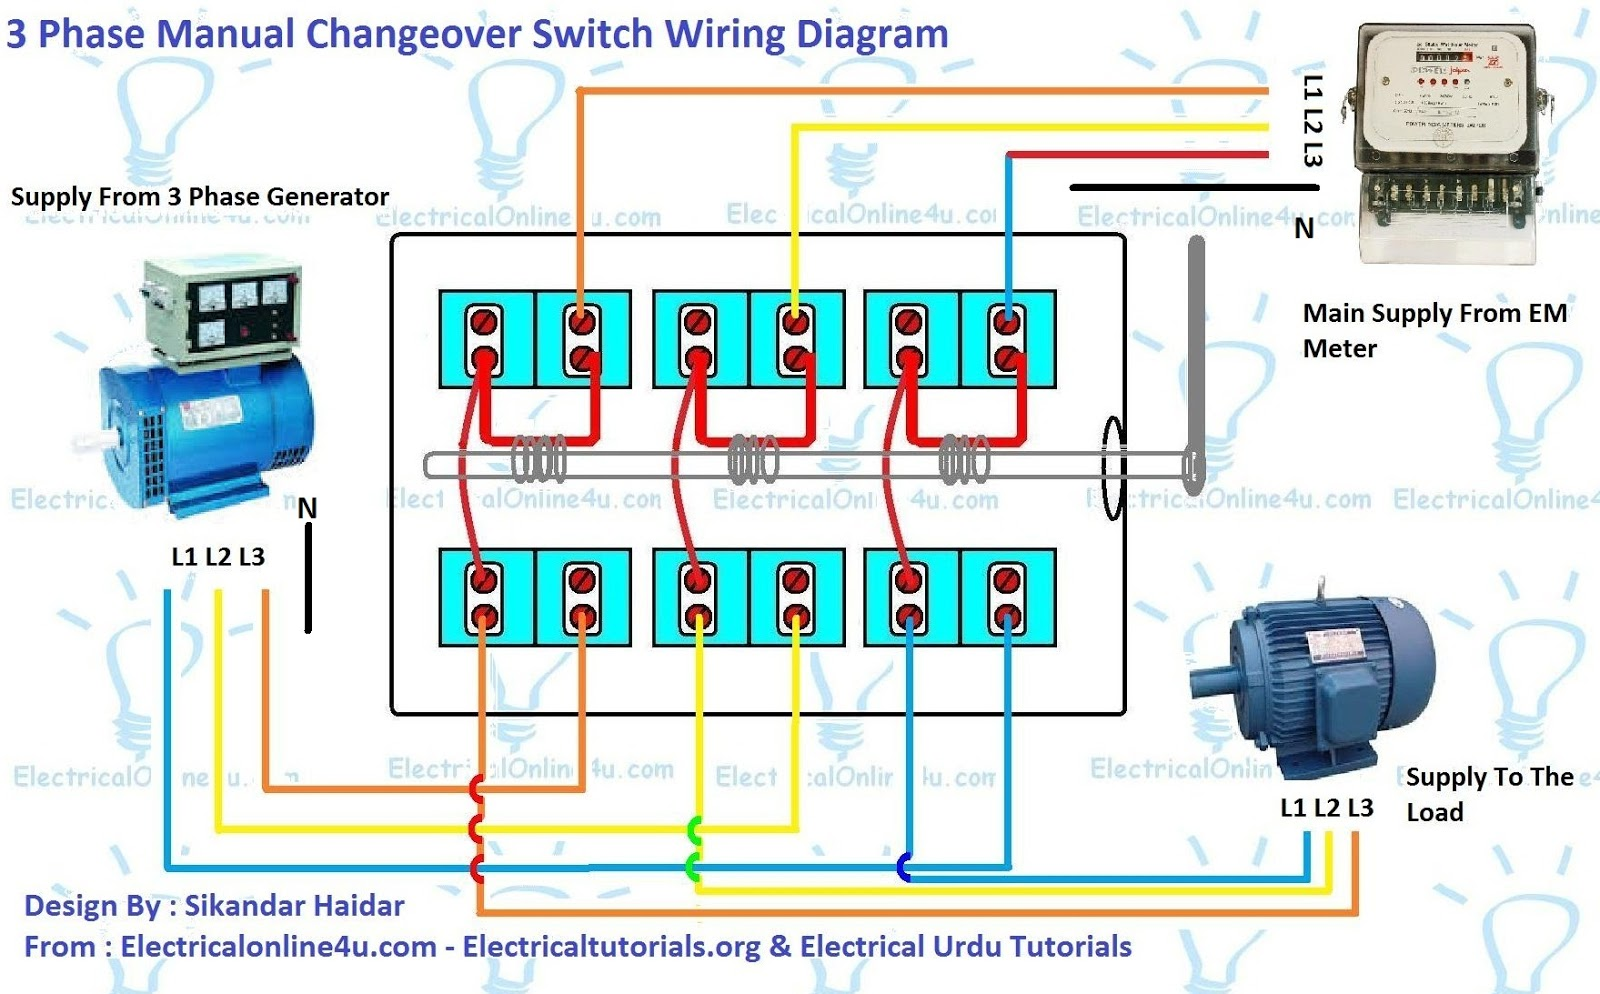 small resolution of 3 phase manual changeover switch wiring diagram for yamaha g9 wiring diagram 1990 yamaha golf